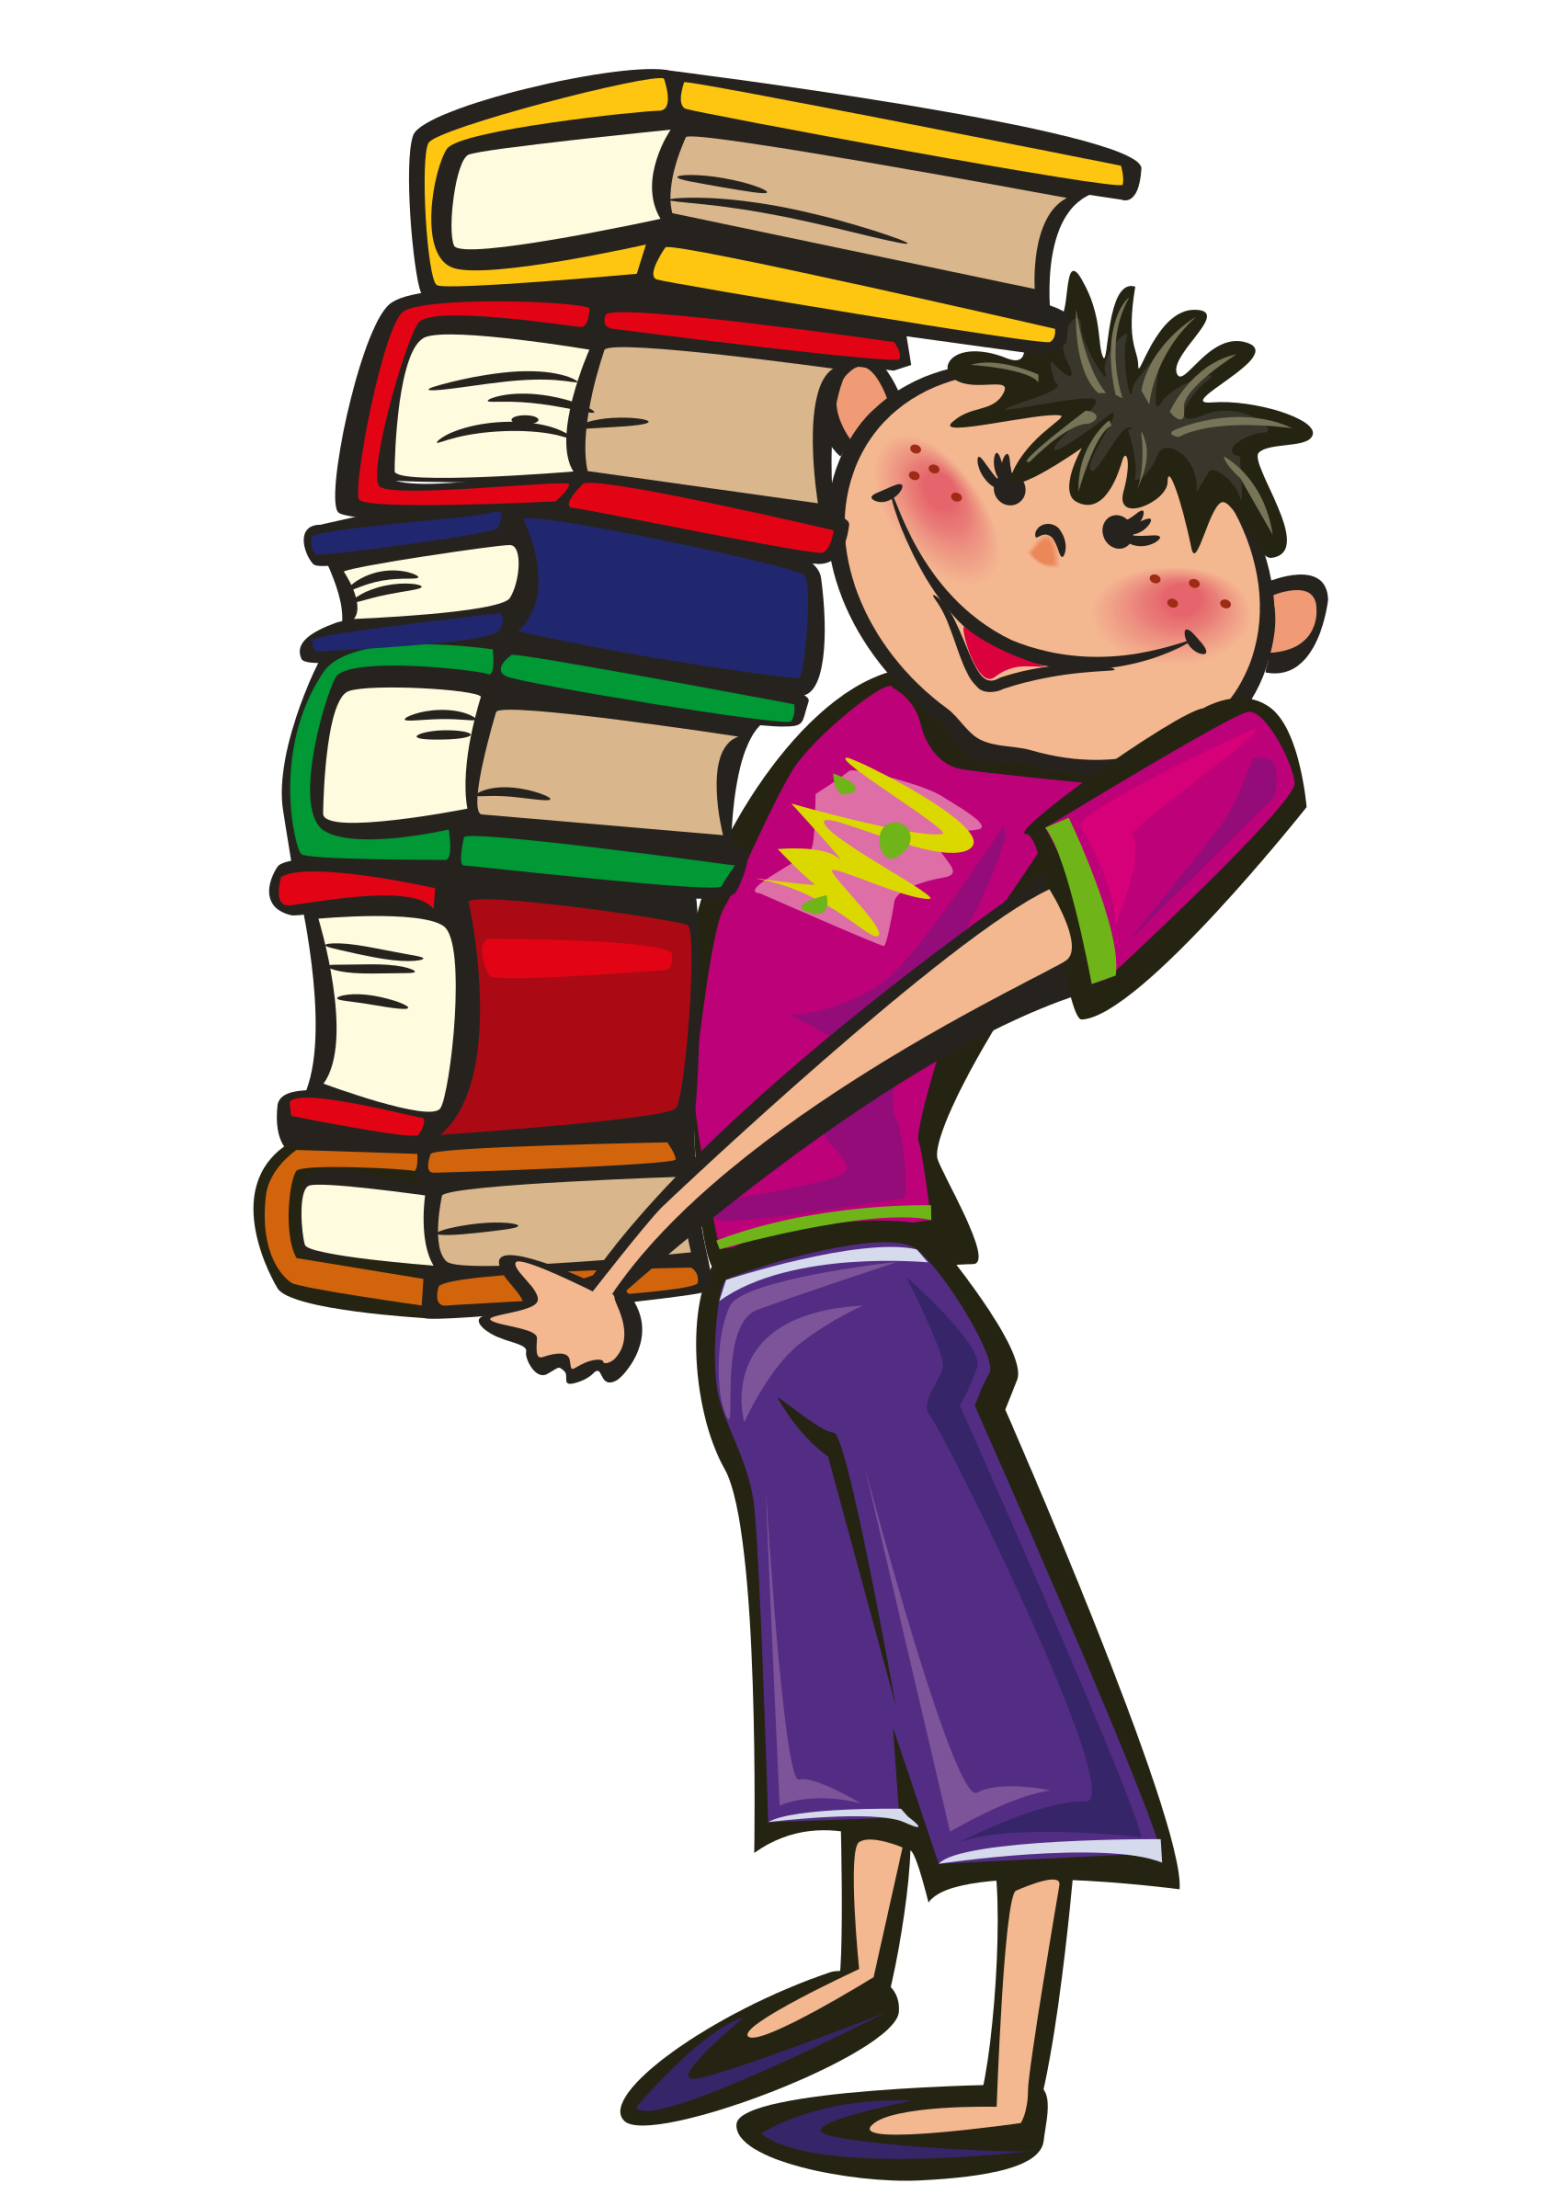 Book student reading clip. Study clipart global study